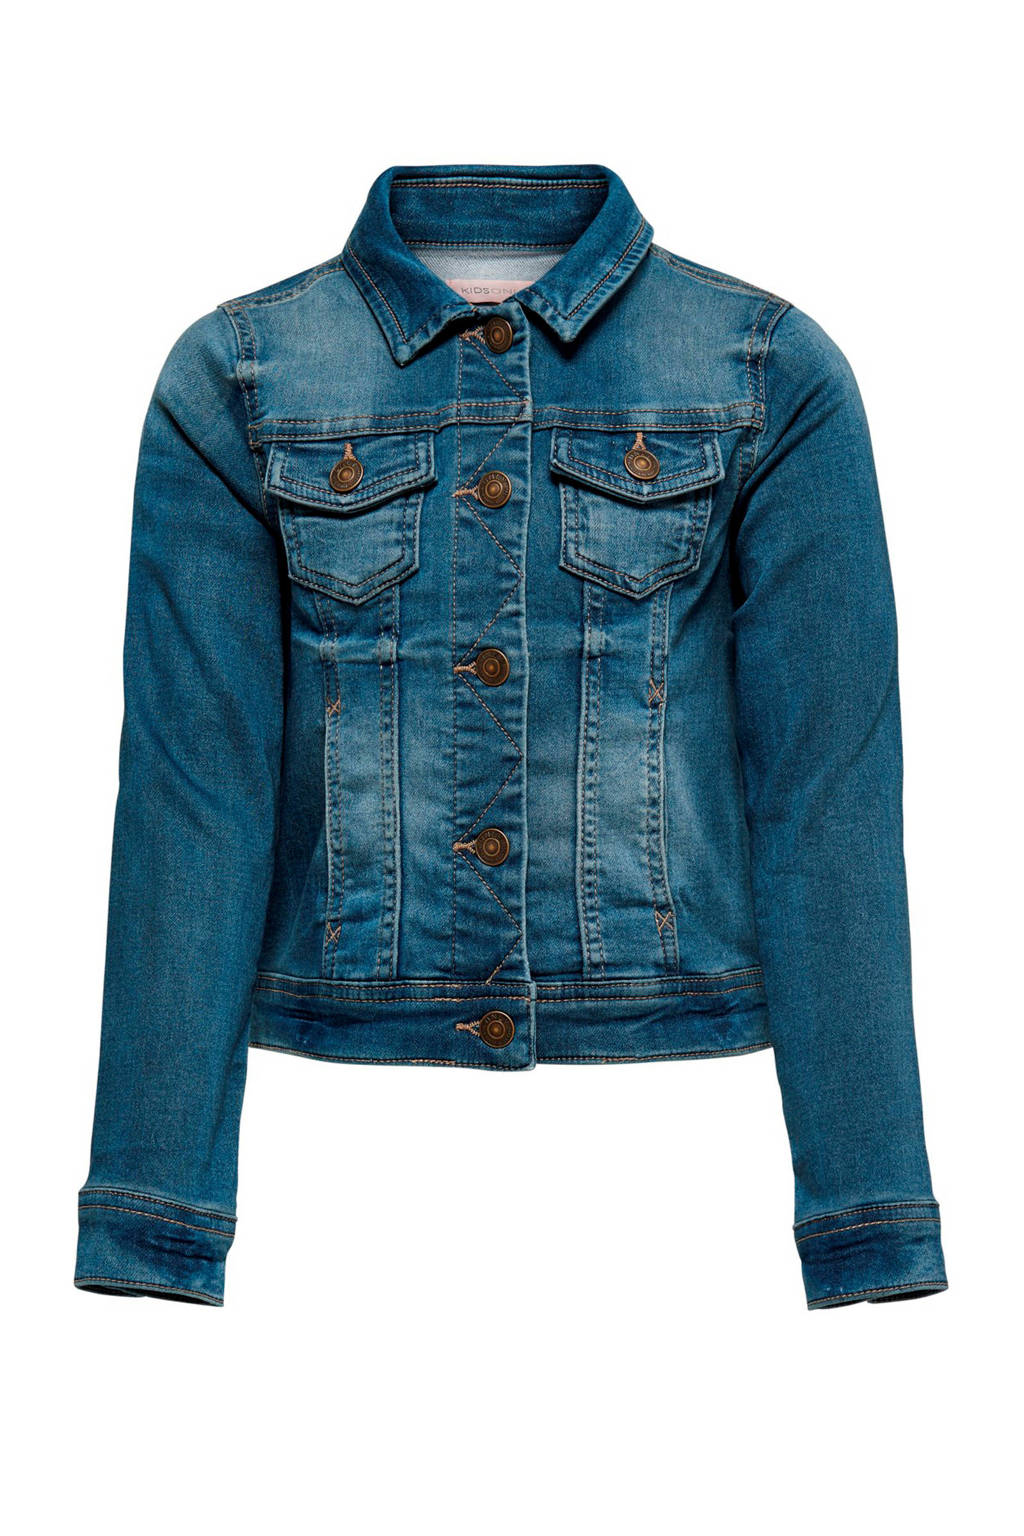 KIDSONLY spijkerjas Sille, Medium Used denim